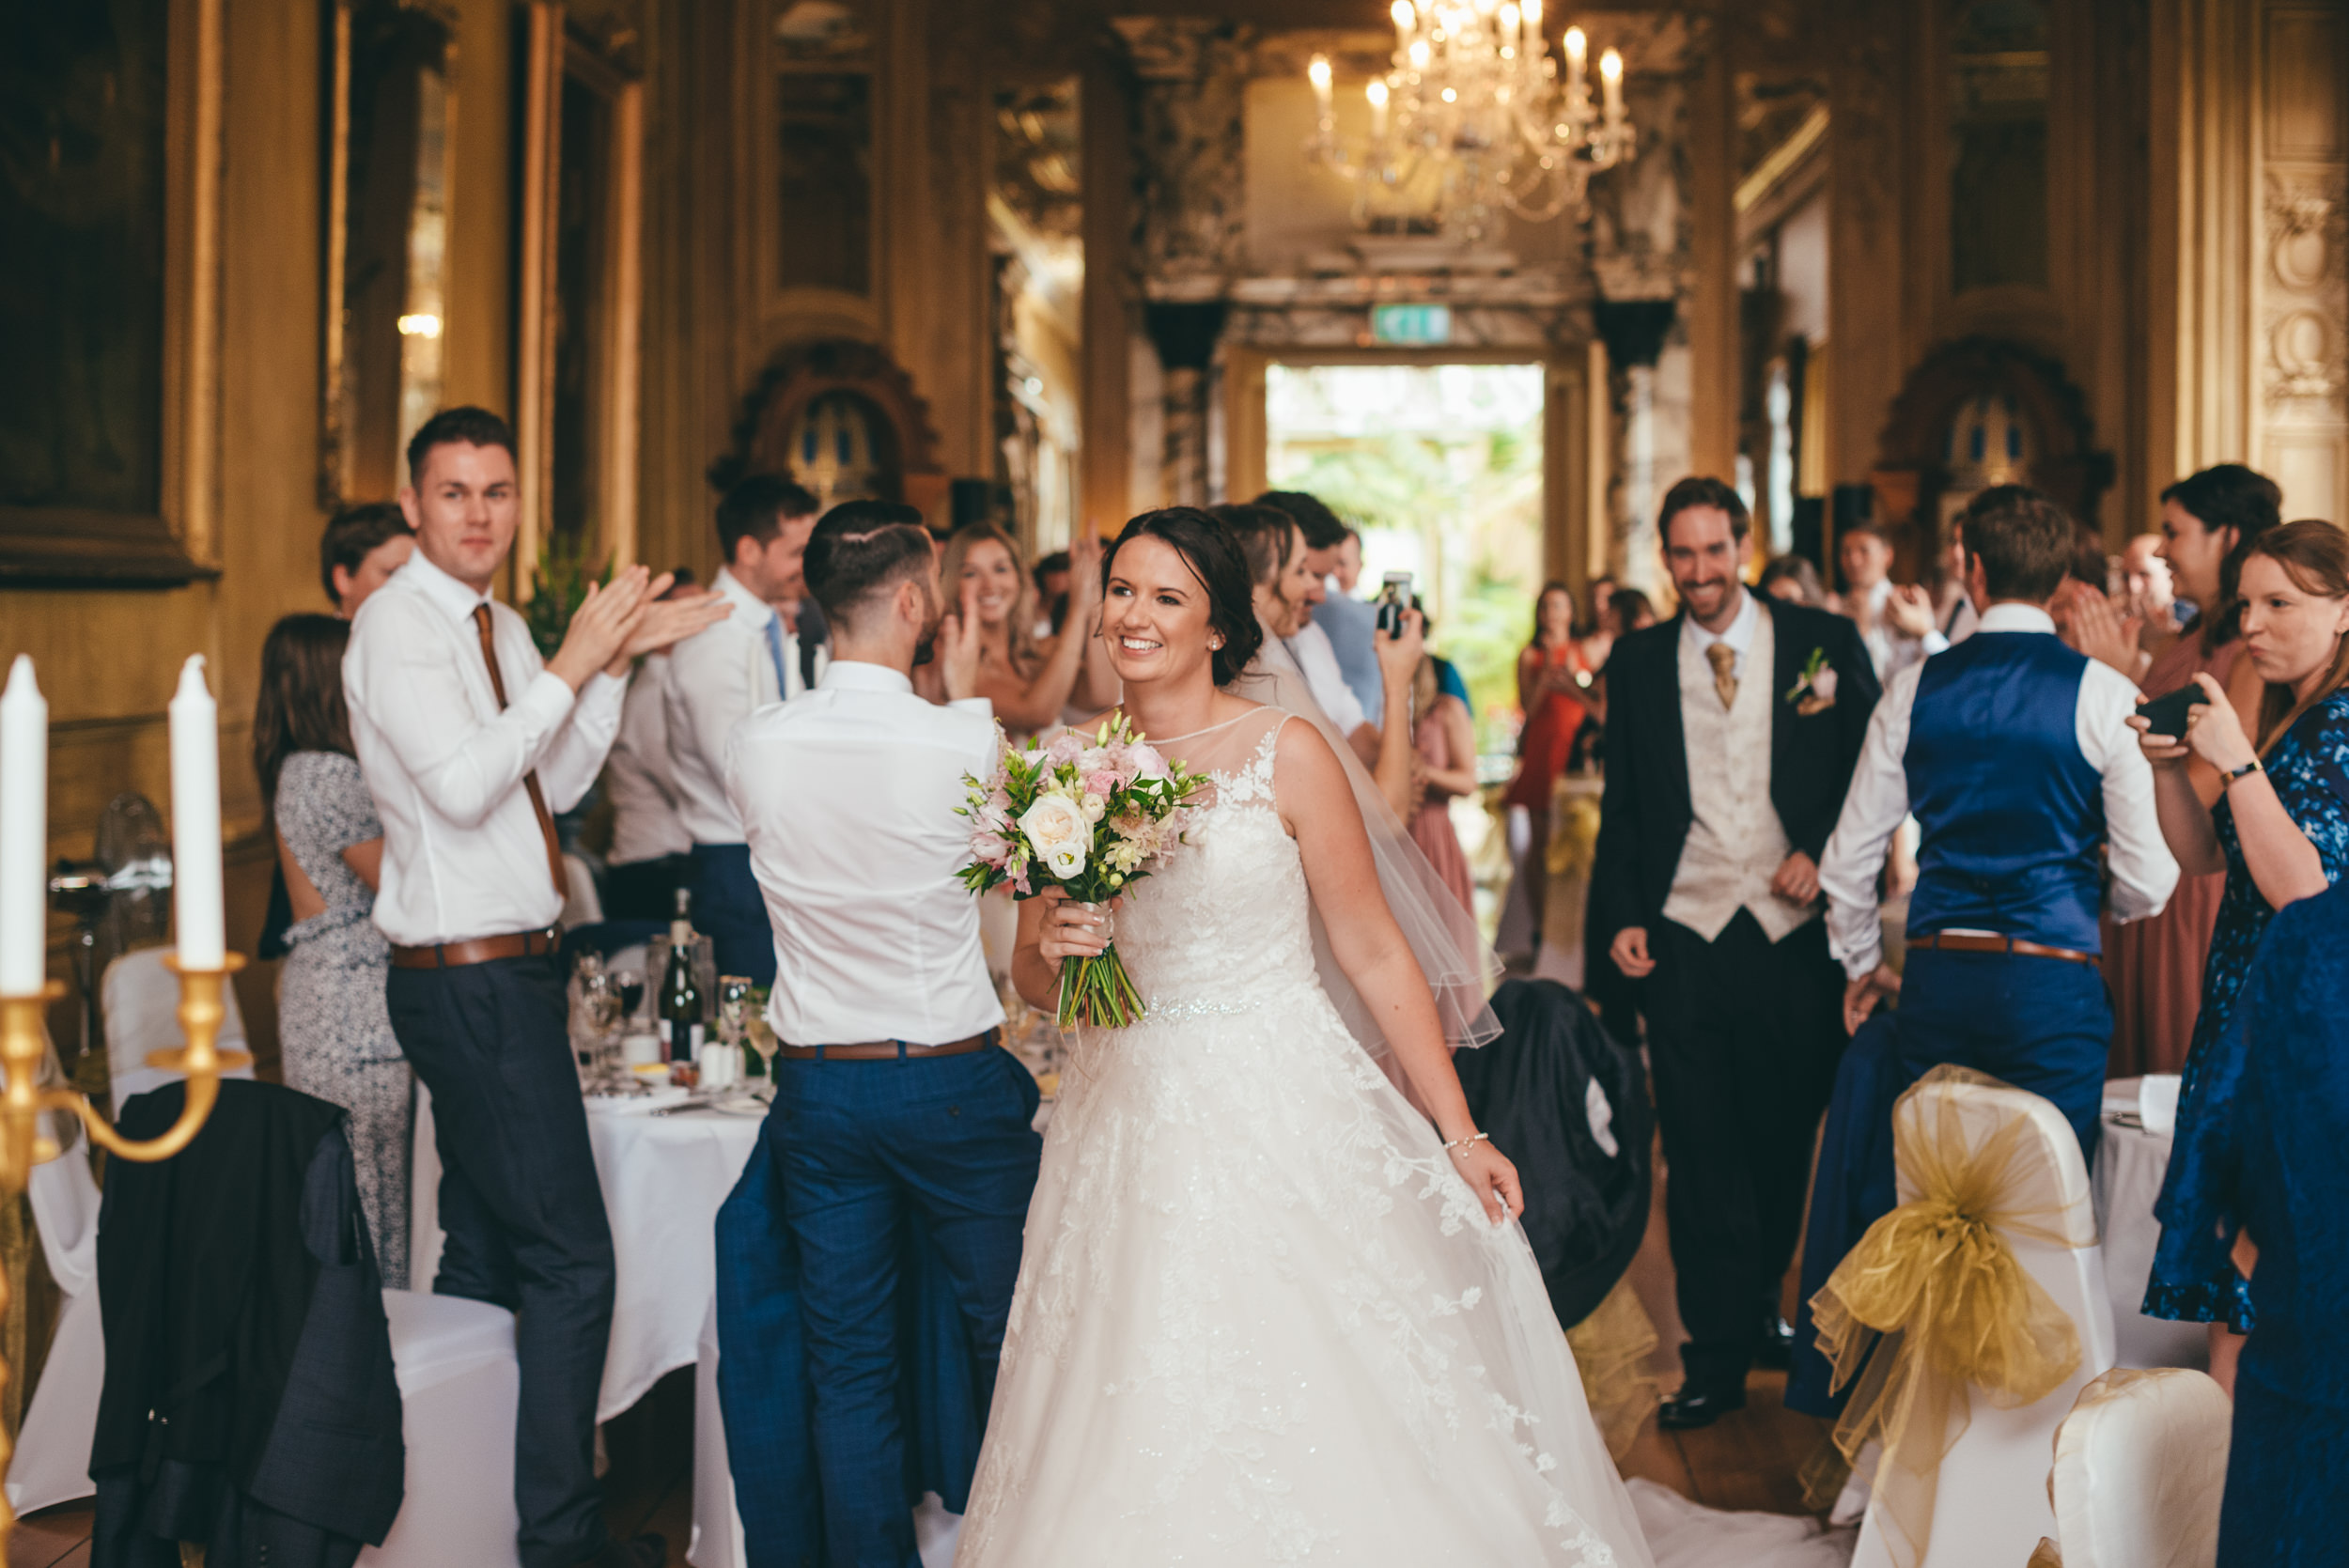 Bride and groom entering the reception room at Harlaxton manor